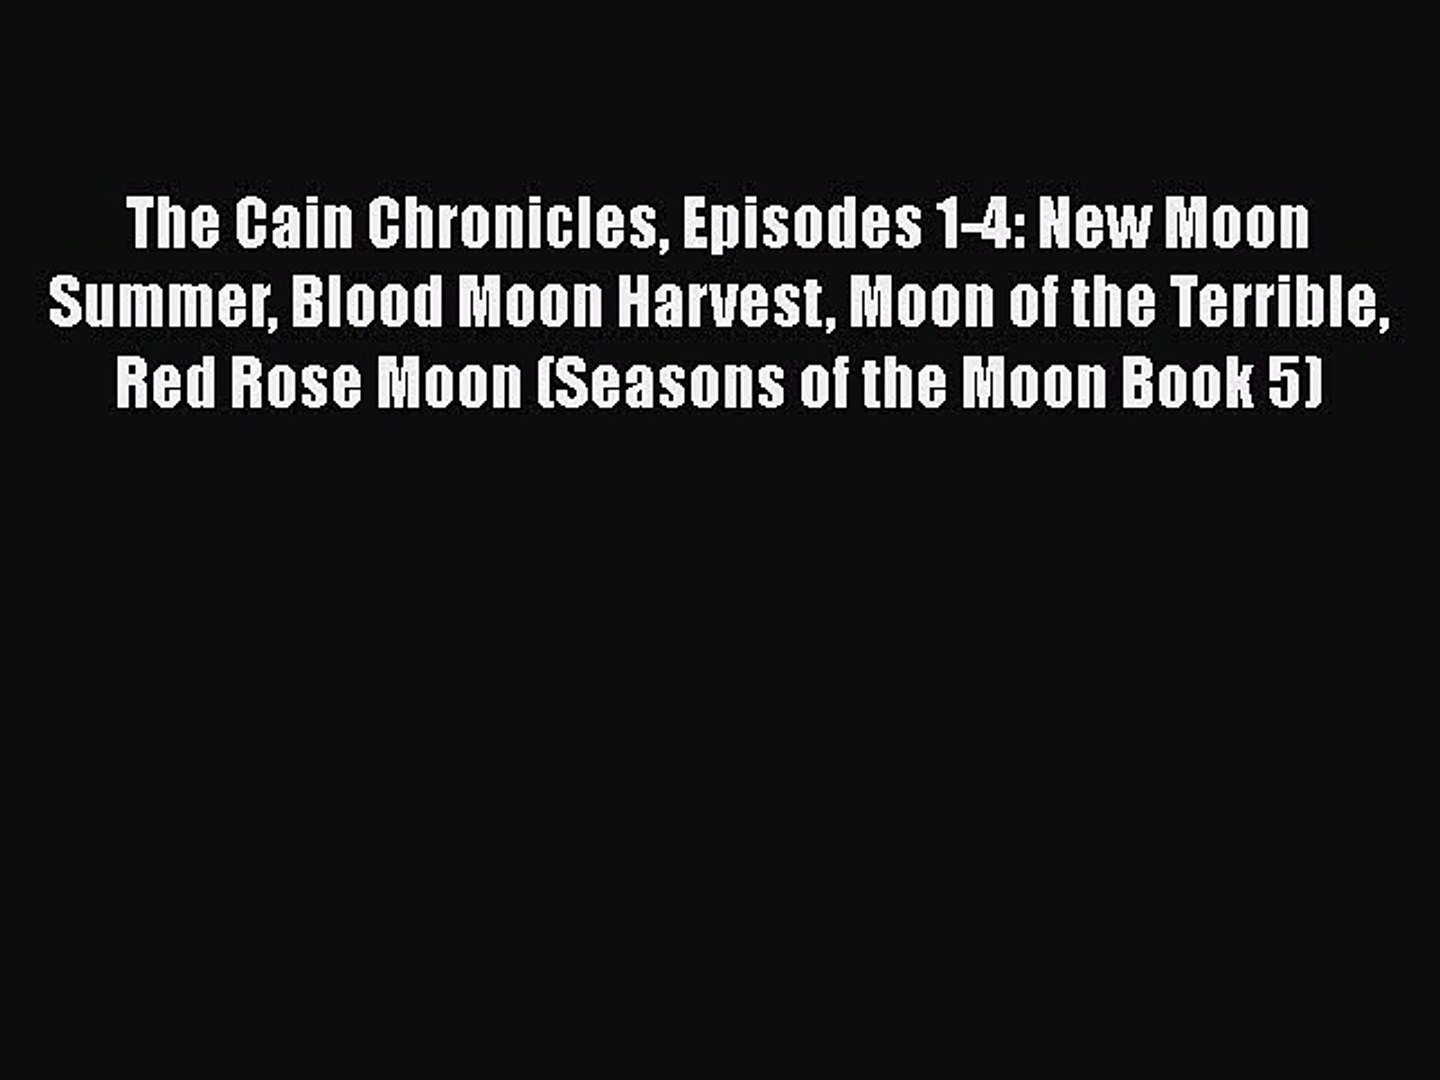 [PDF] The Cain Chronicles Episodes 1-4: New Moon Summer Blood Moon Harvest Moon of the Terrible